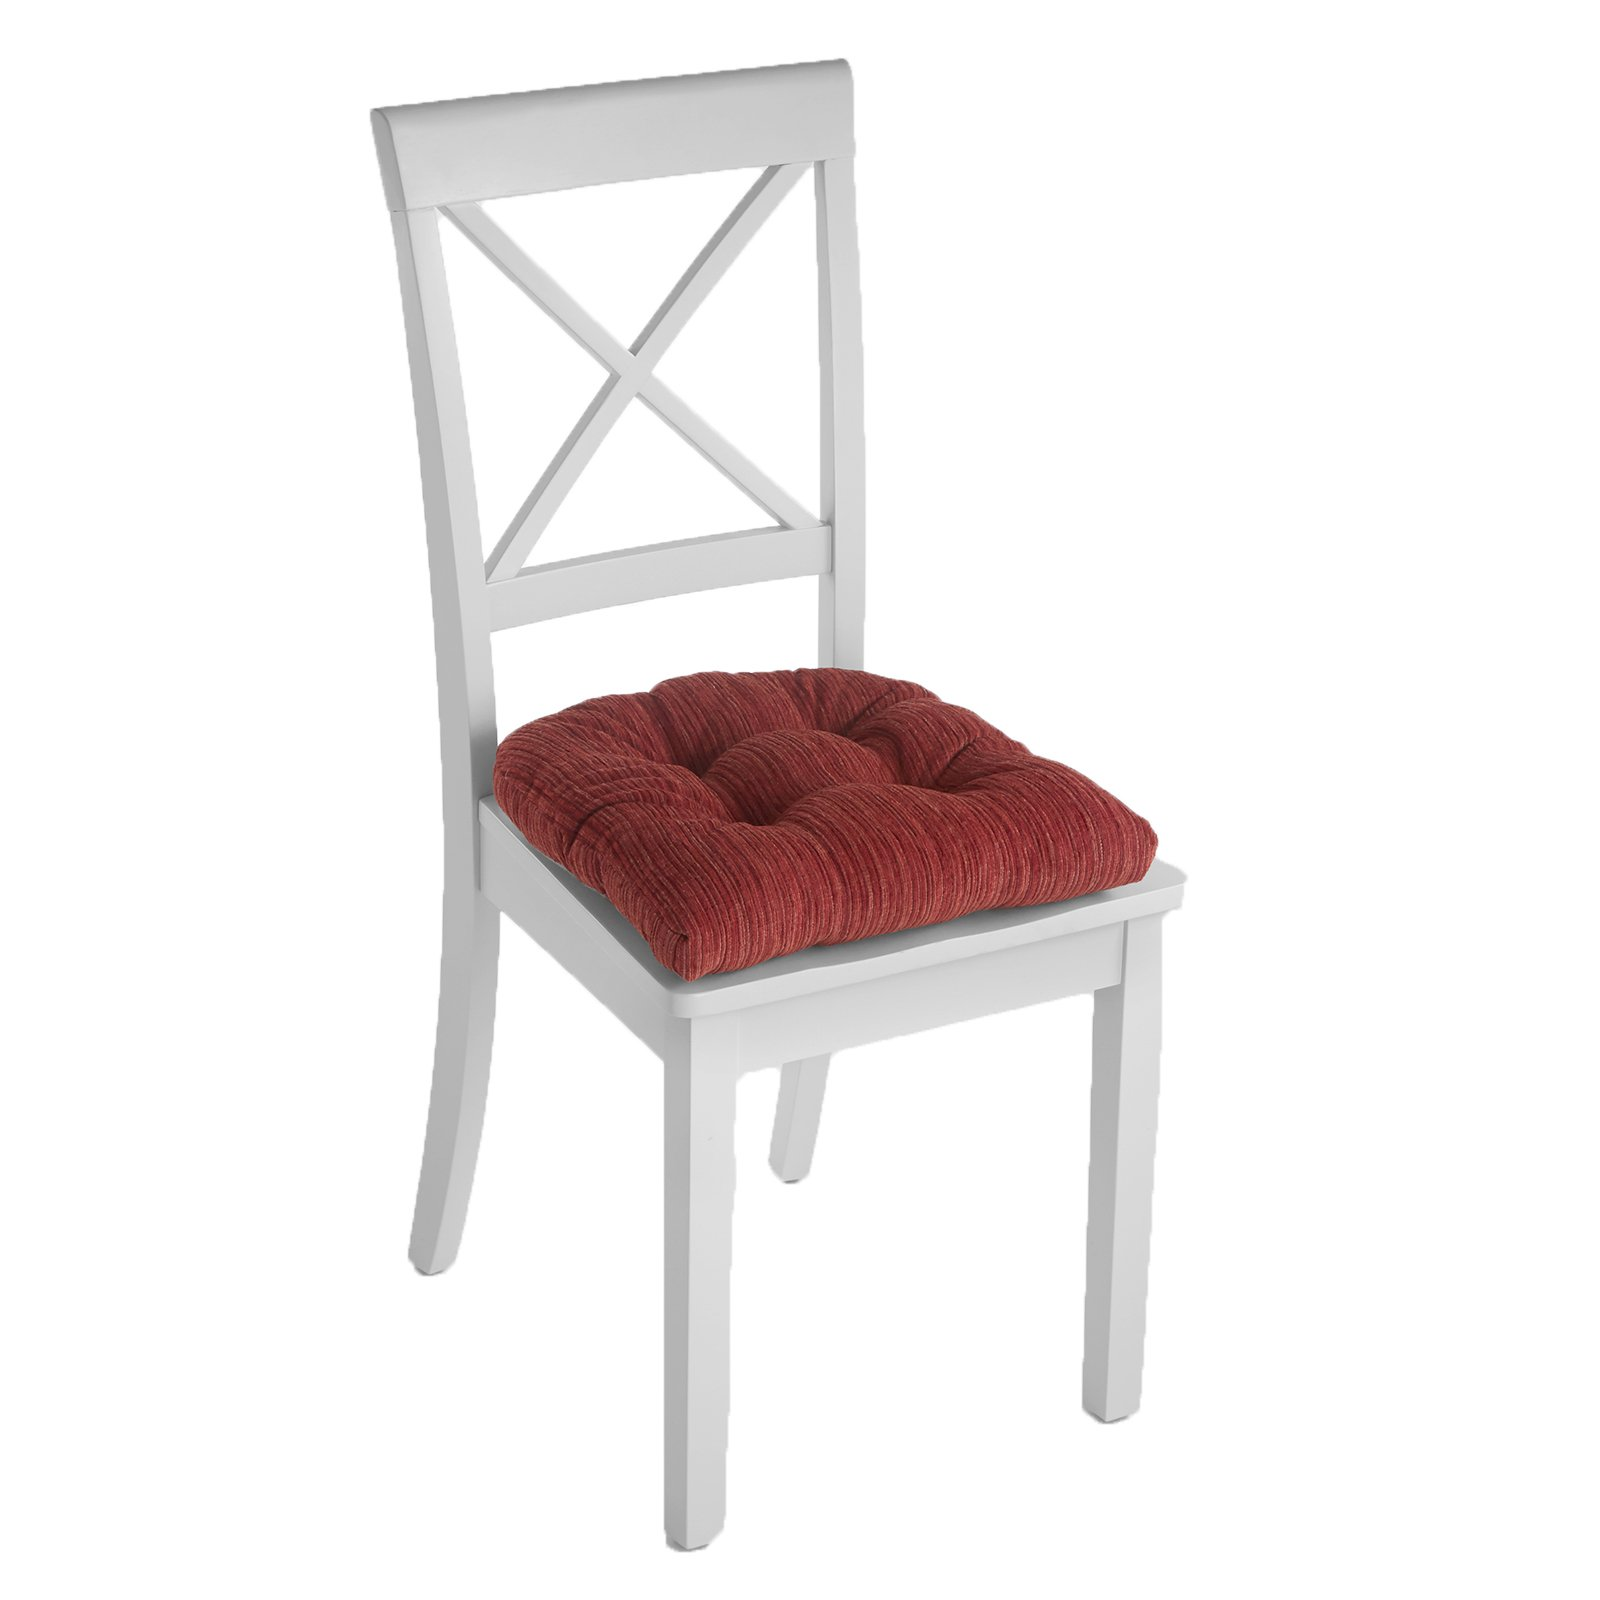 Cheap Skirted Chair Pad Find Skirted Chair Pad Deals On